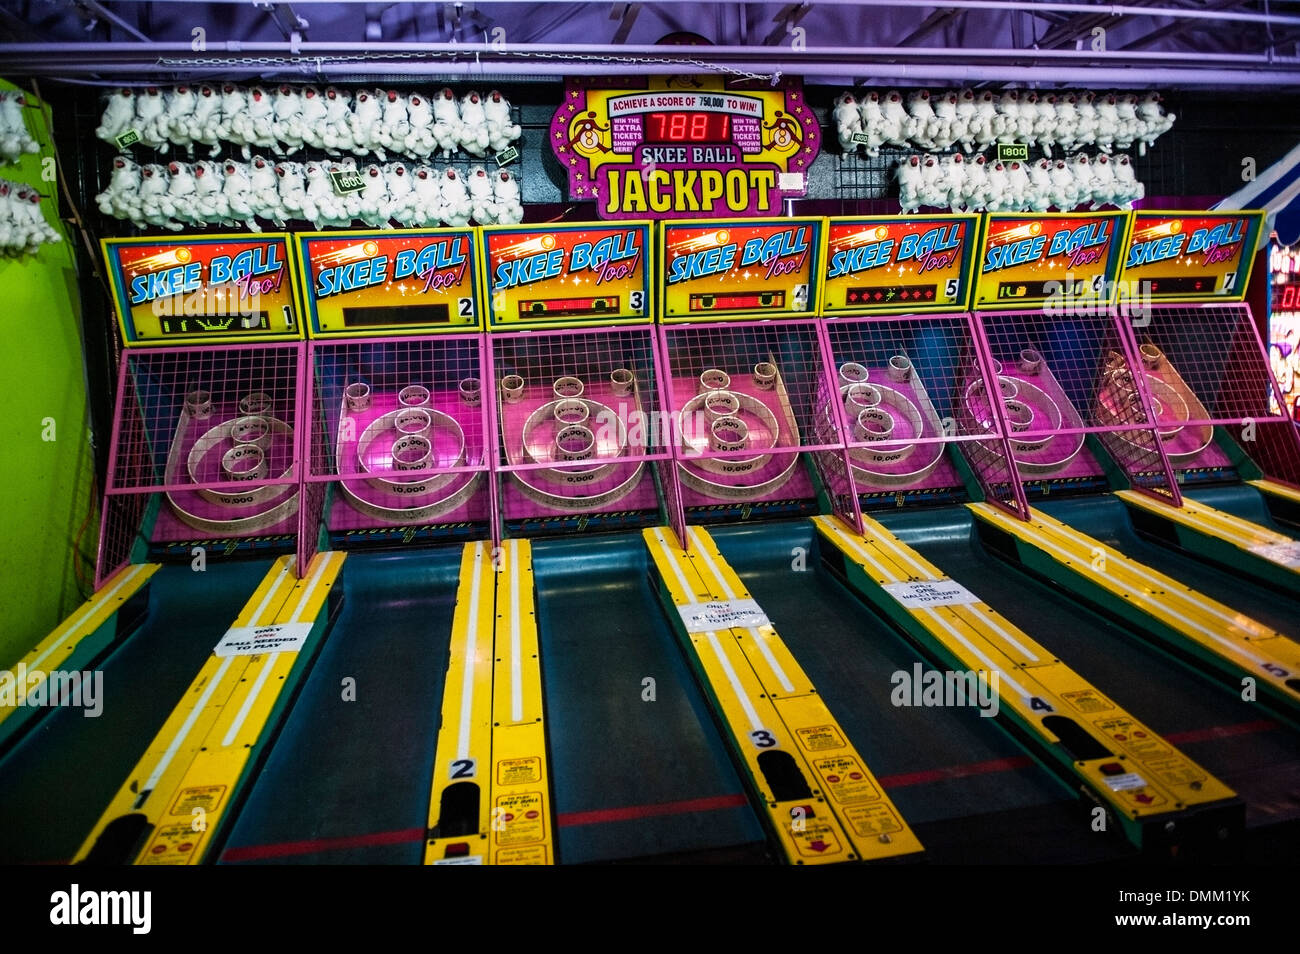 Skee ball arcade game - Stock Image